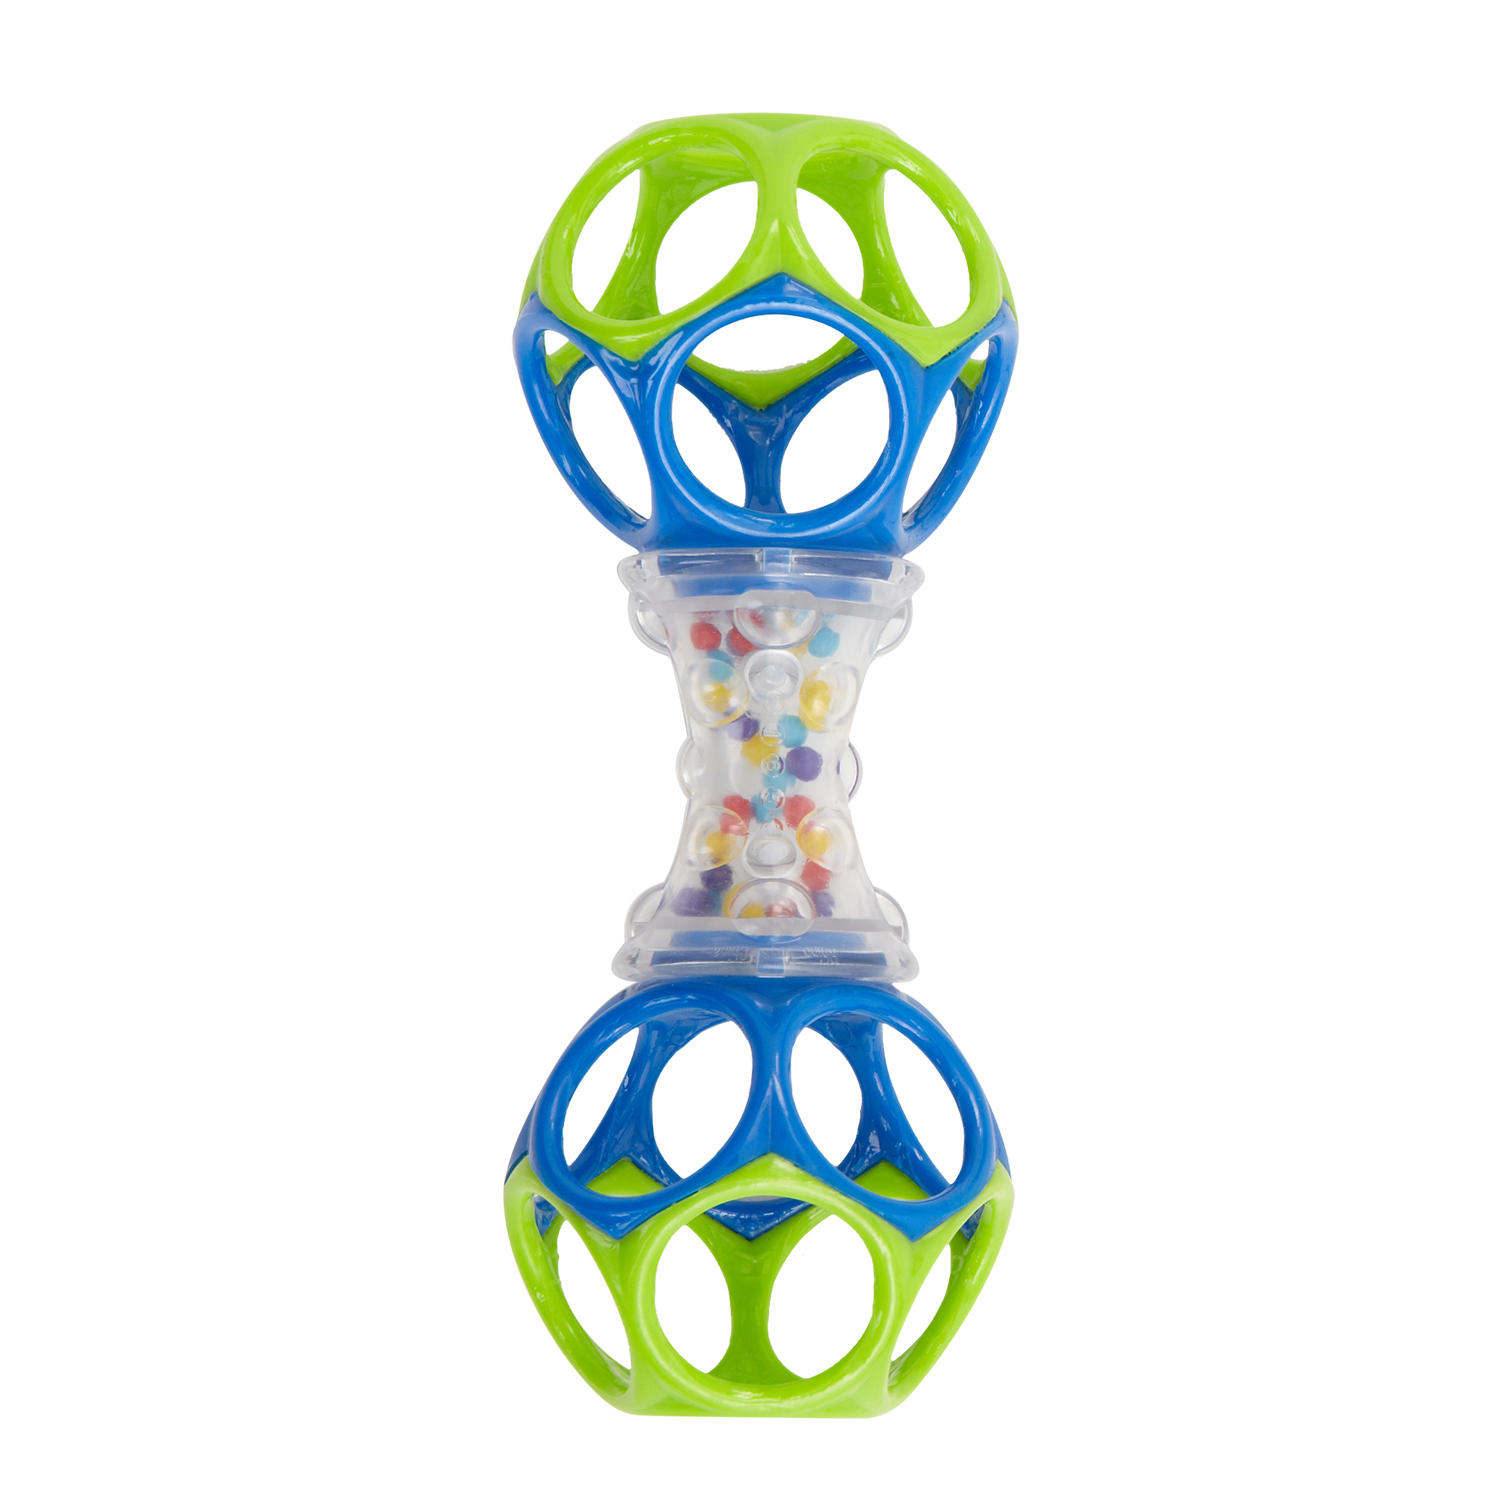 Oball Oball Shaker Toy